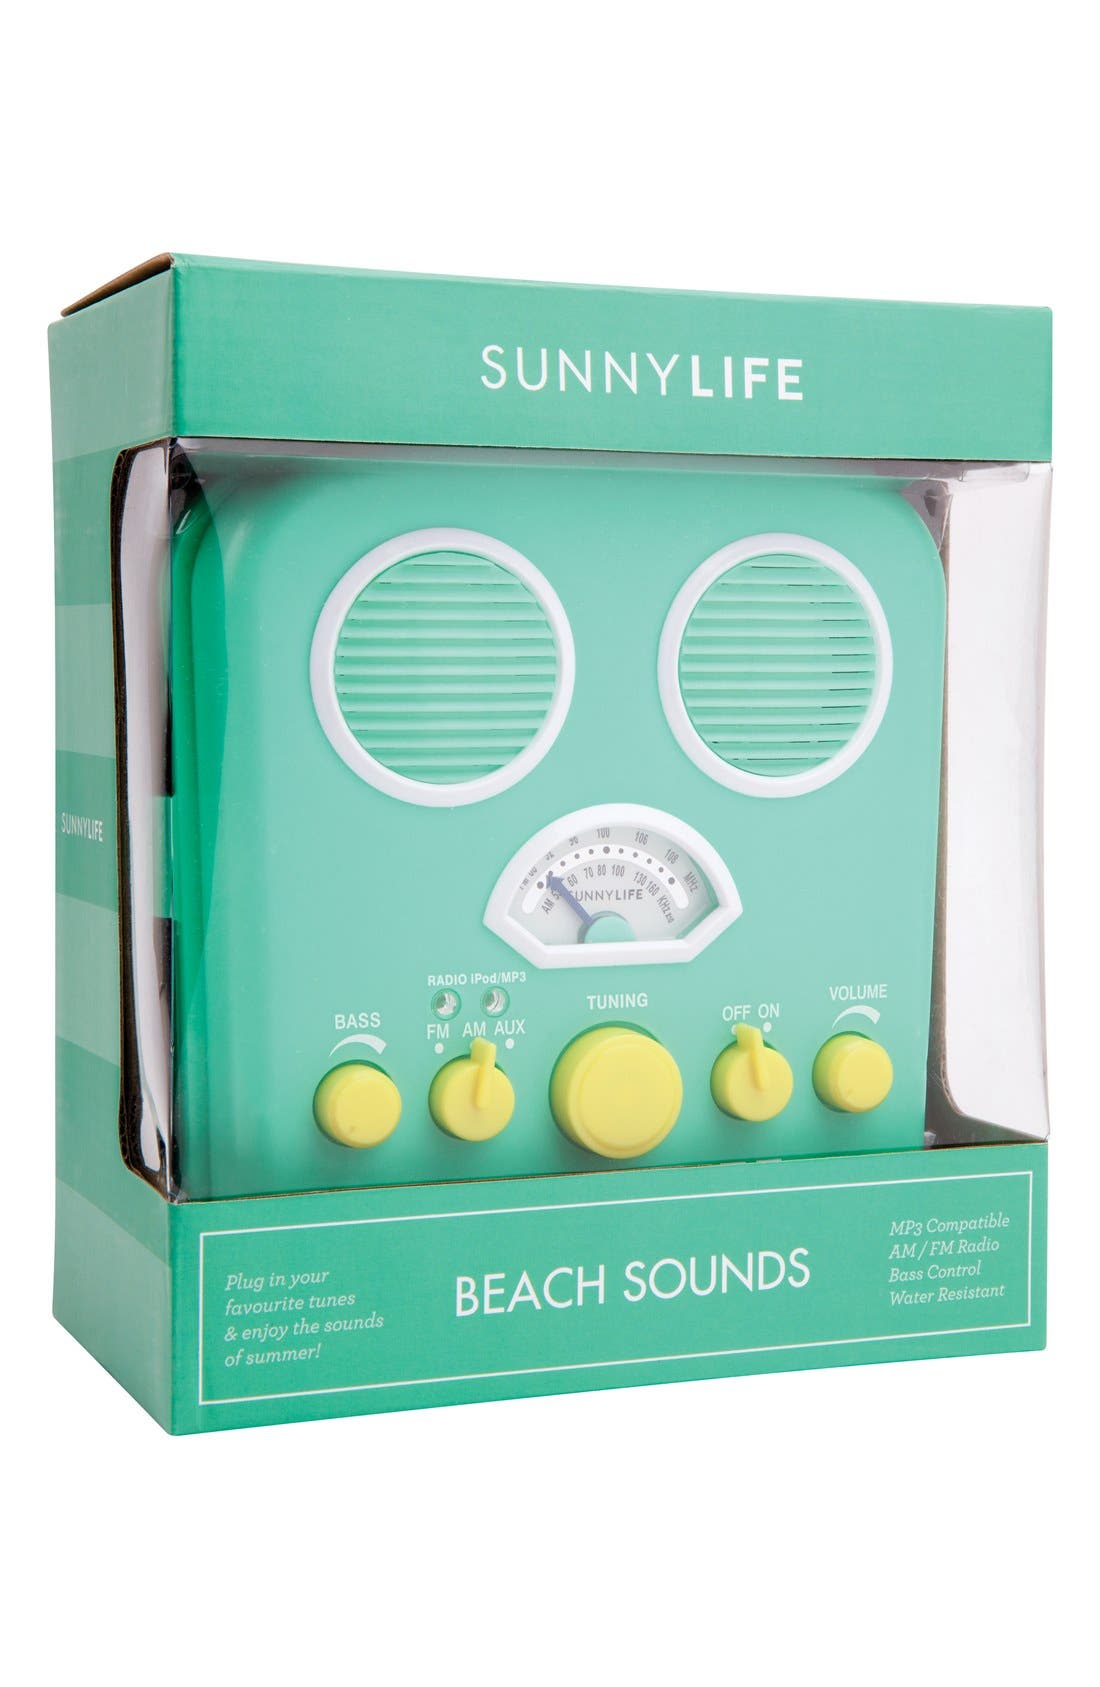 Alternate Image 1 Selected - Sunnylife 'Beach Sounds' Portable Water Resistant Speaker & Radio